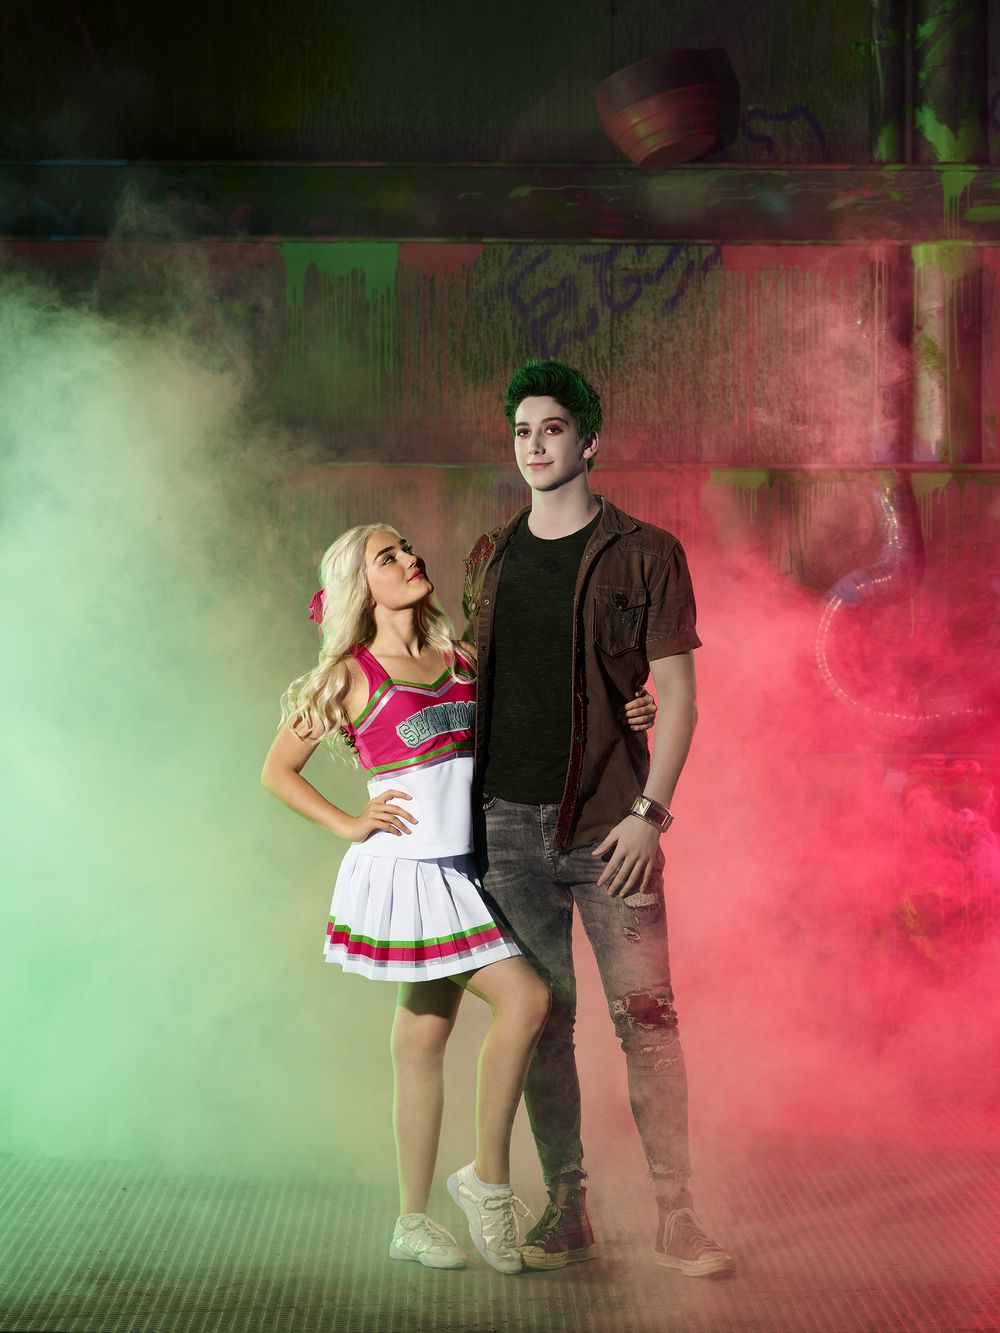 ZOMBIES 2 With Meg Donnelly And Milo Manheim – Where Have ...